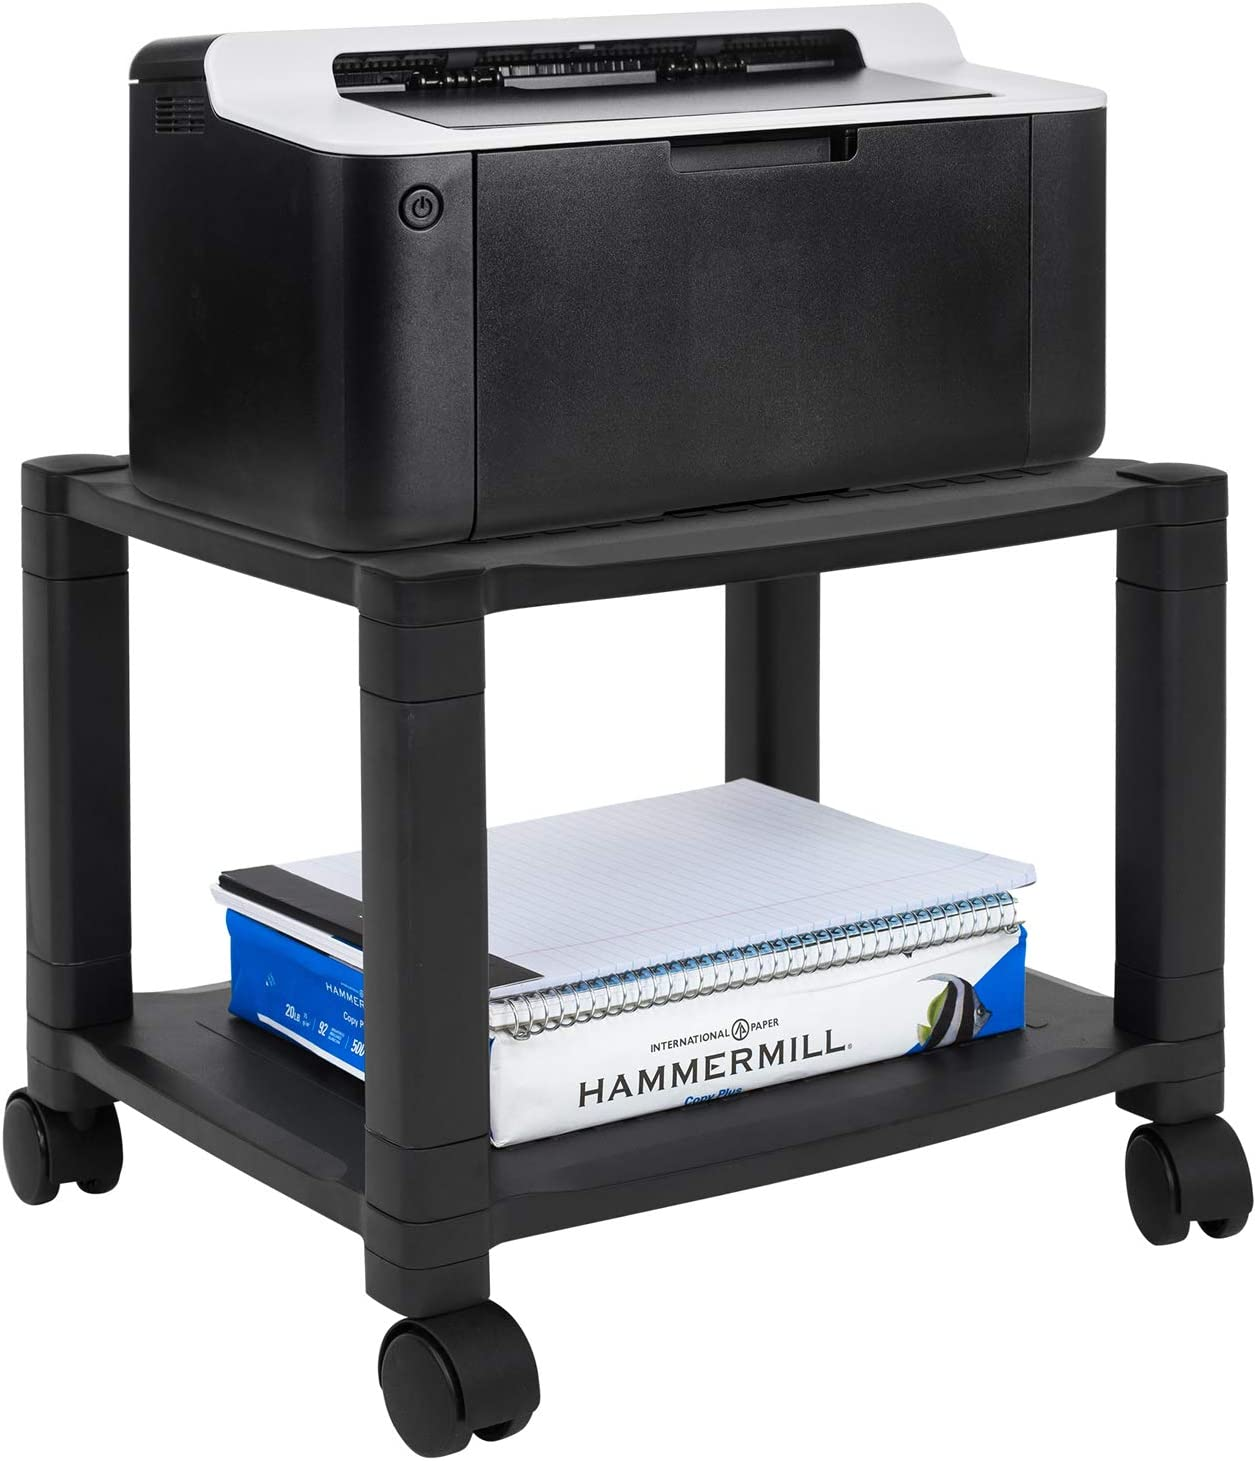 MOUNT-IT! Under Desk Printer/Fax Stand [2 Shelf] Height Adjustable with 4 Swivel Wheels, Cable Management, Low Rolling, Mobile Printer Cart, 2 Tier (Black)